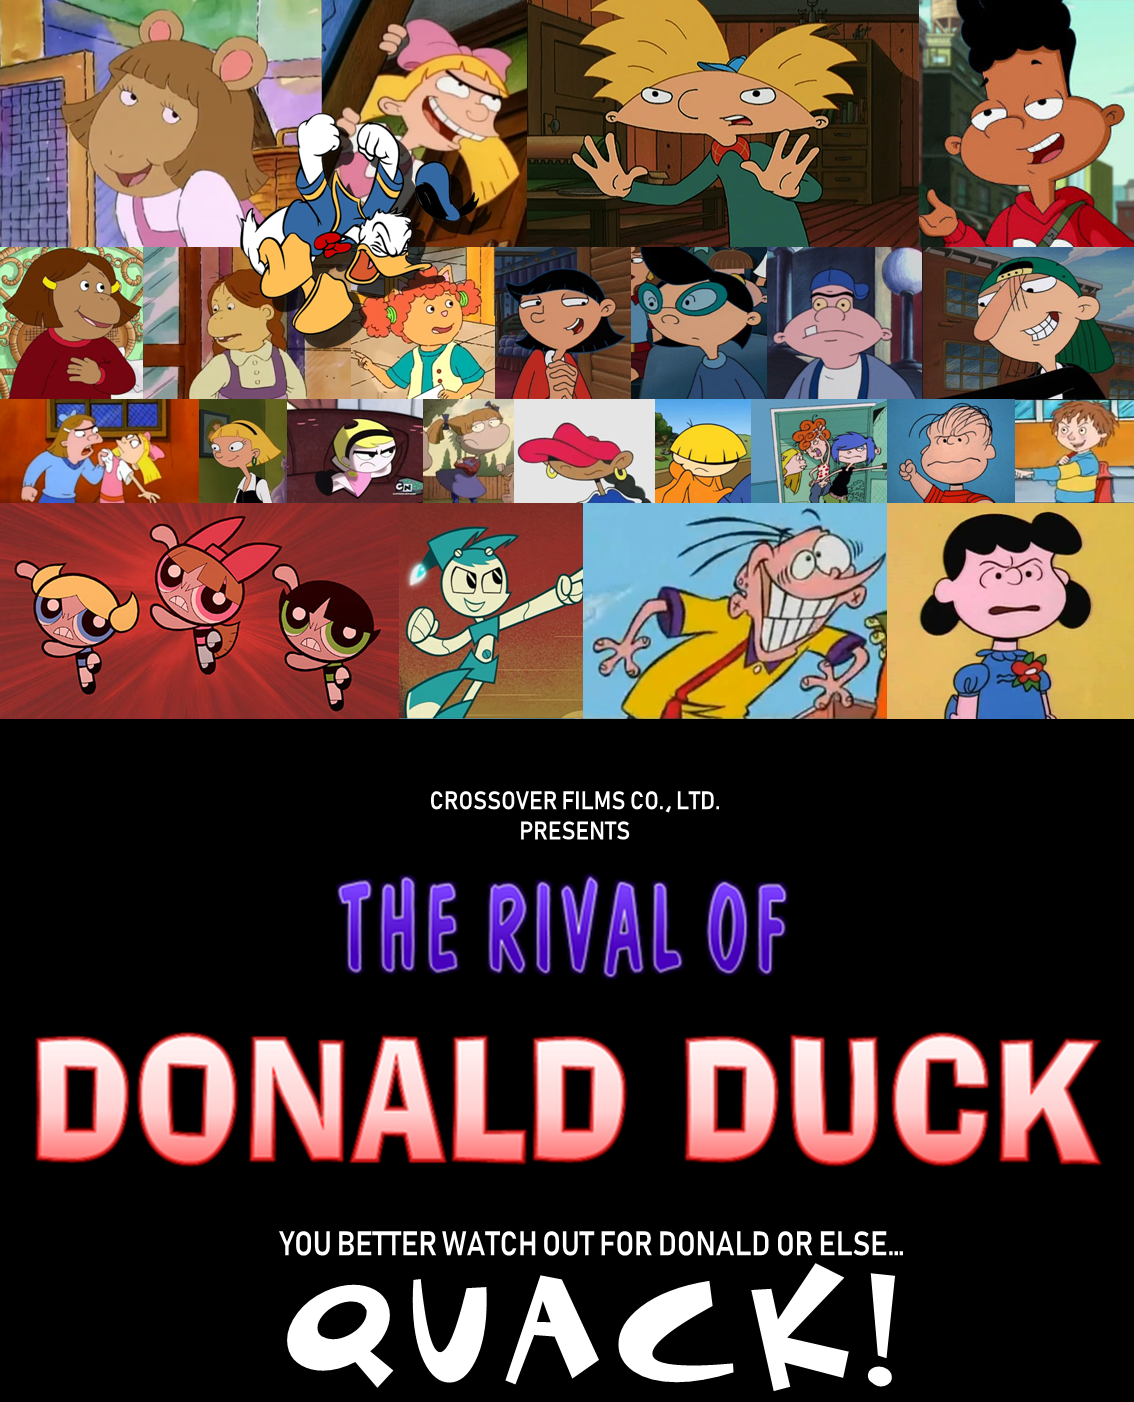 The Rival of Donald Duck